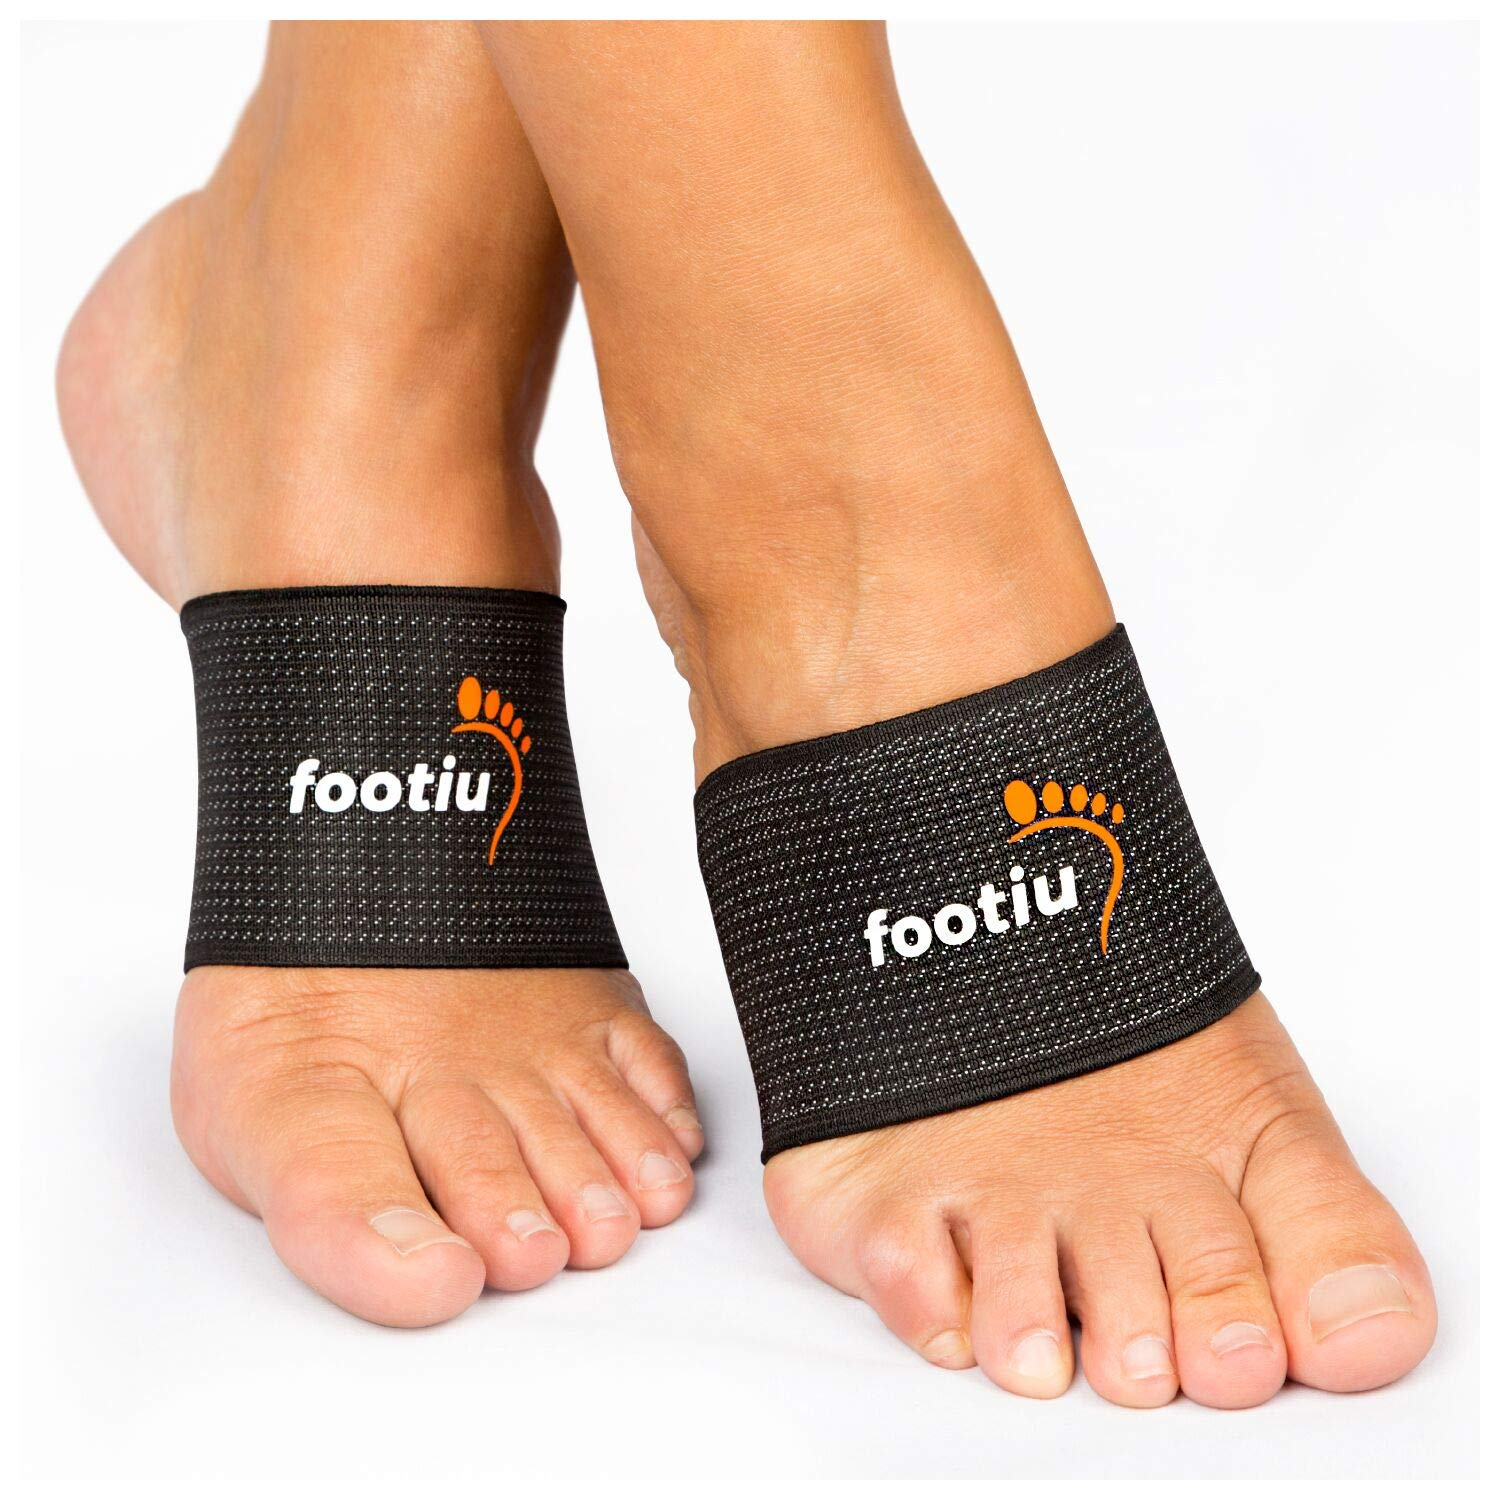 FOOTIU Compression Copper Arch Support Brace - 2 Plantar Fasciitis Sleeves For Pain Relief, Heel Spurs and Flat Feet + Gel Cushions Bonus by ATTICAN